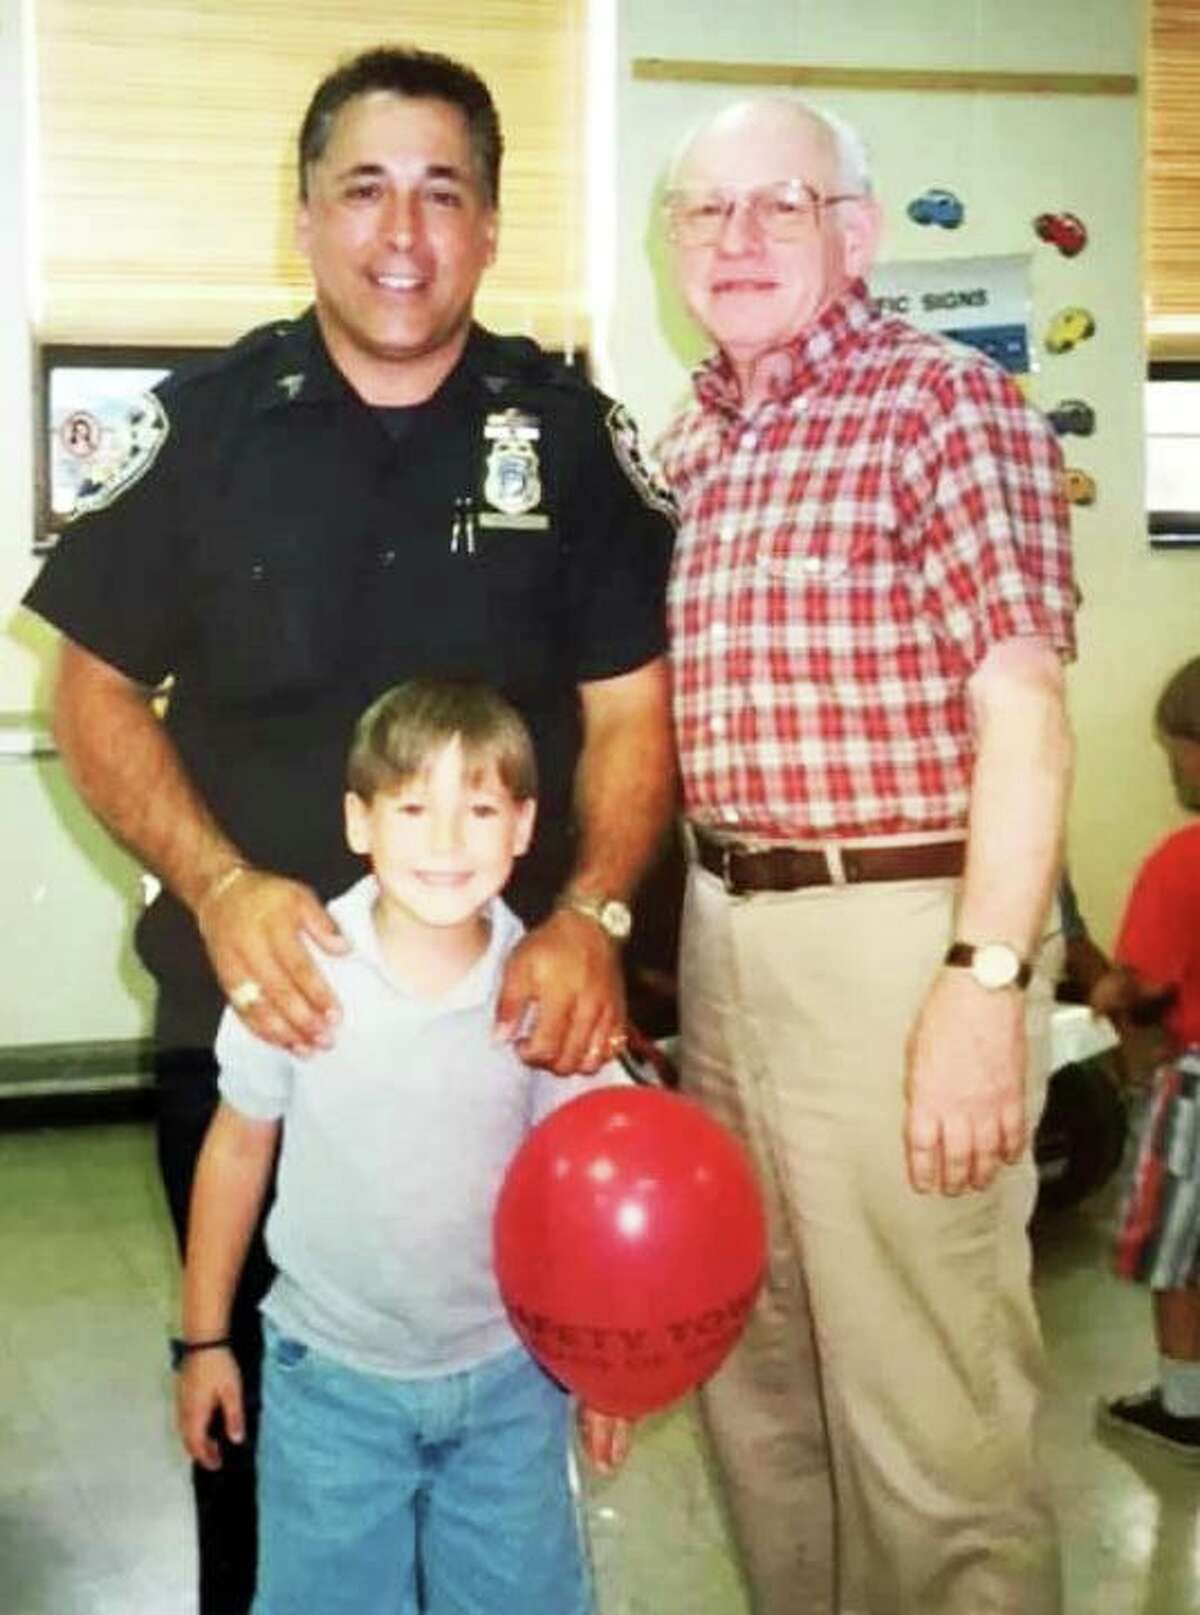 Middletown Common Council Minority Leader Phil Pessina, left, and the late Clayton Hewitt, right, a former Middletown police officer, are shown with Hewitt's grandson during the late 1970s to early 1980s during a Safety Town graduation.